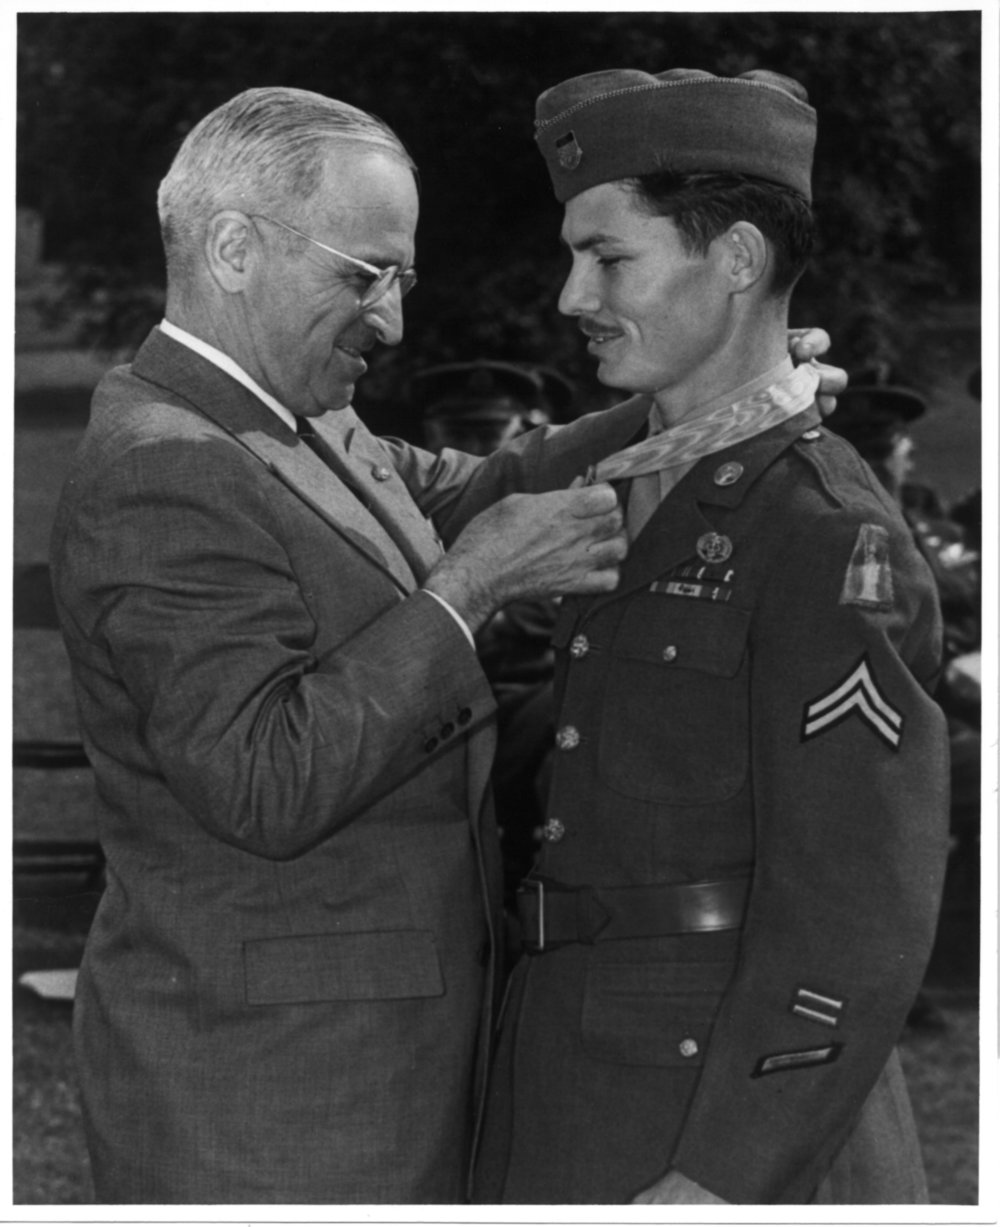 Desmond Doss receives Medal of Honor